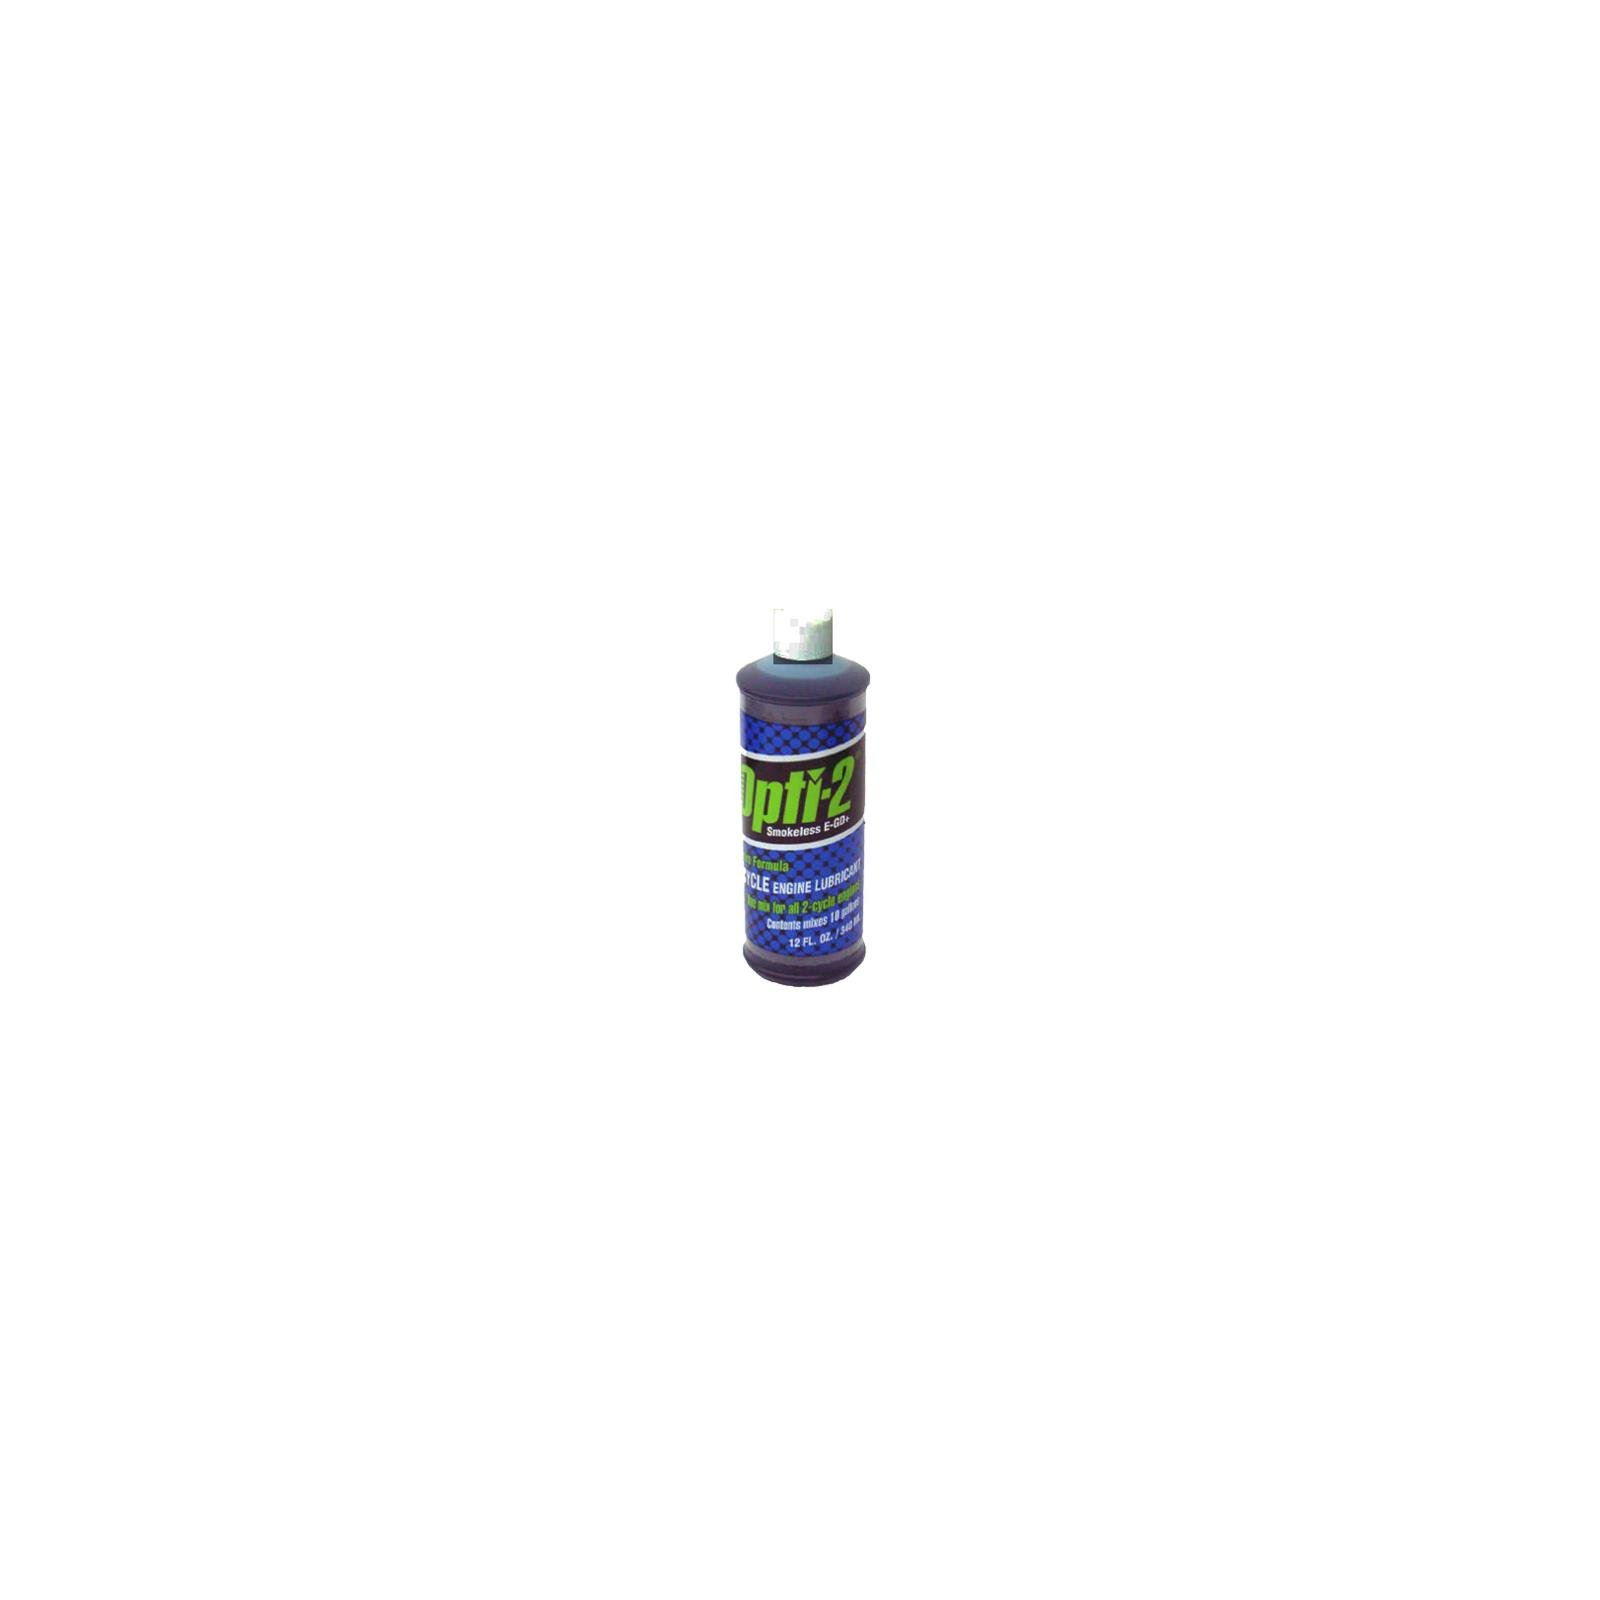 12OZ 2 Cyc Oil (Pack of 12)